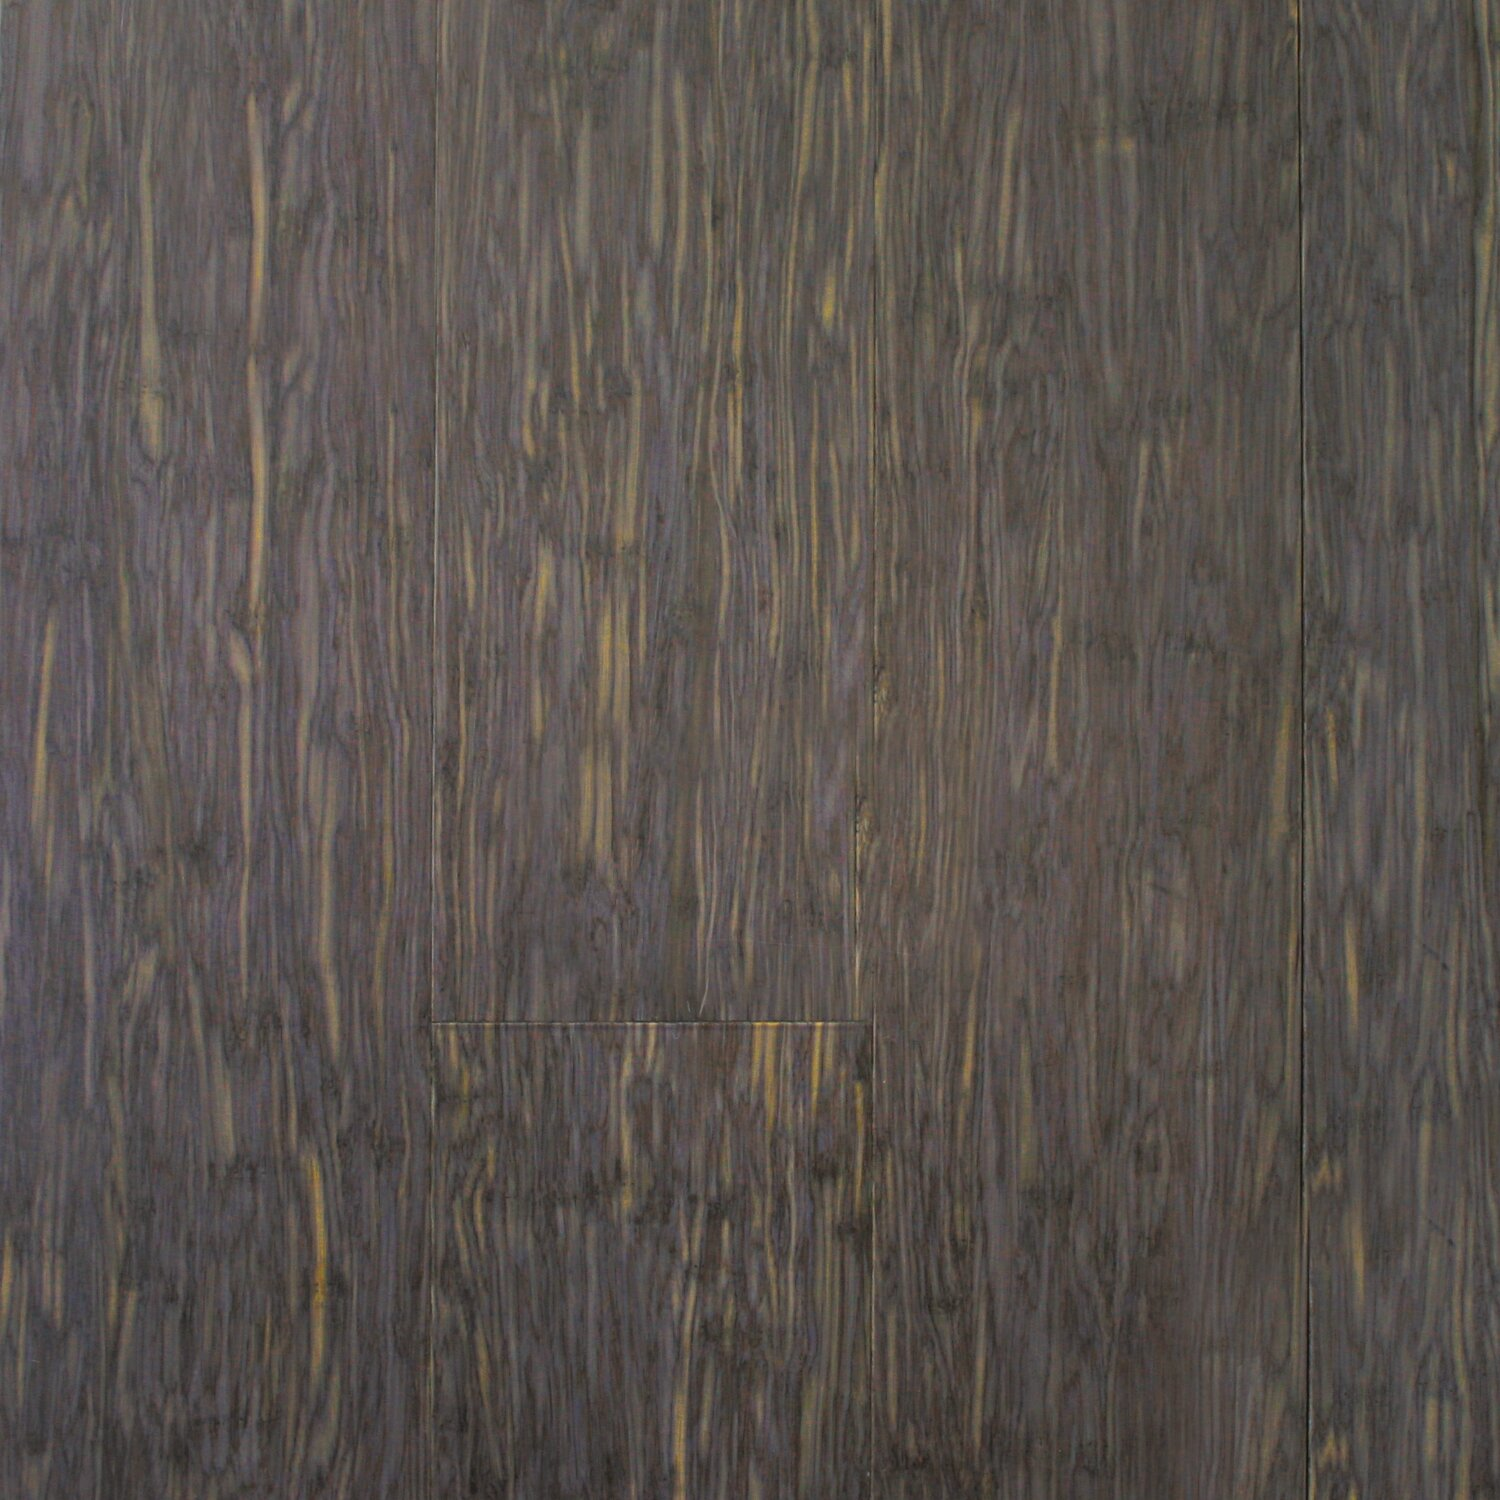 Ecofusion flooring colorfusion 4 3 4 engineered for Engineered bamboo flooring